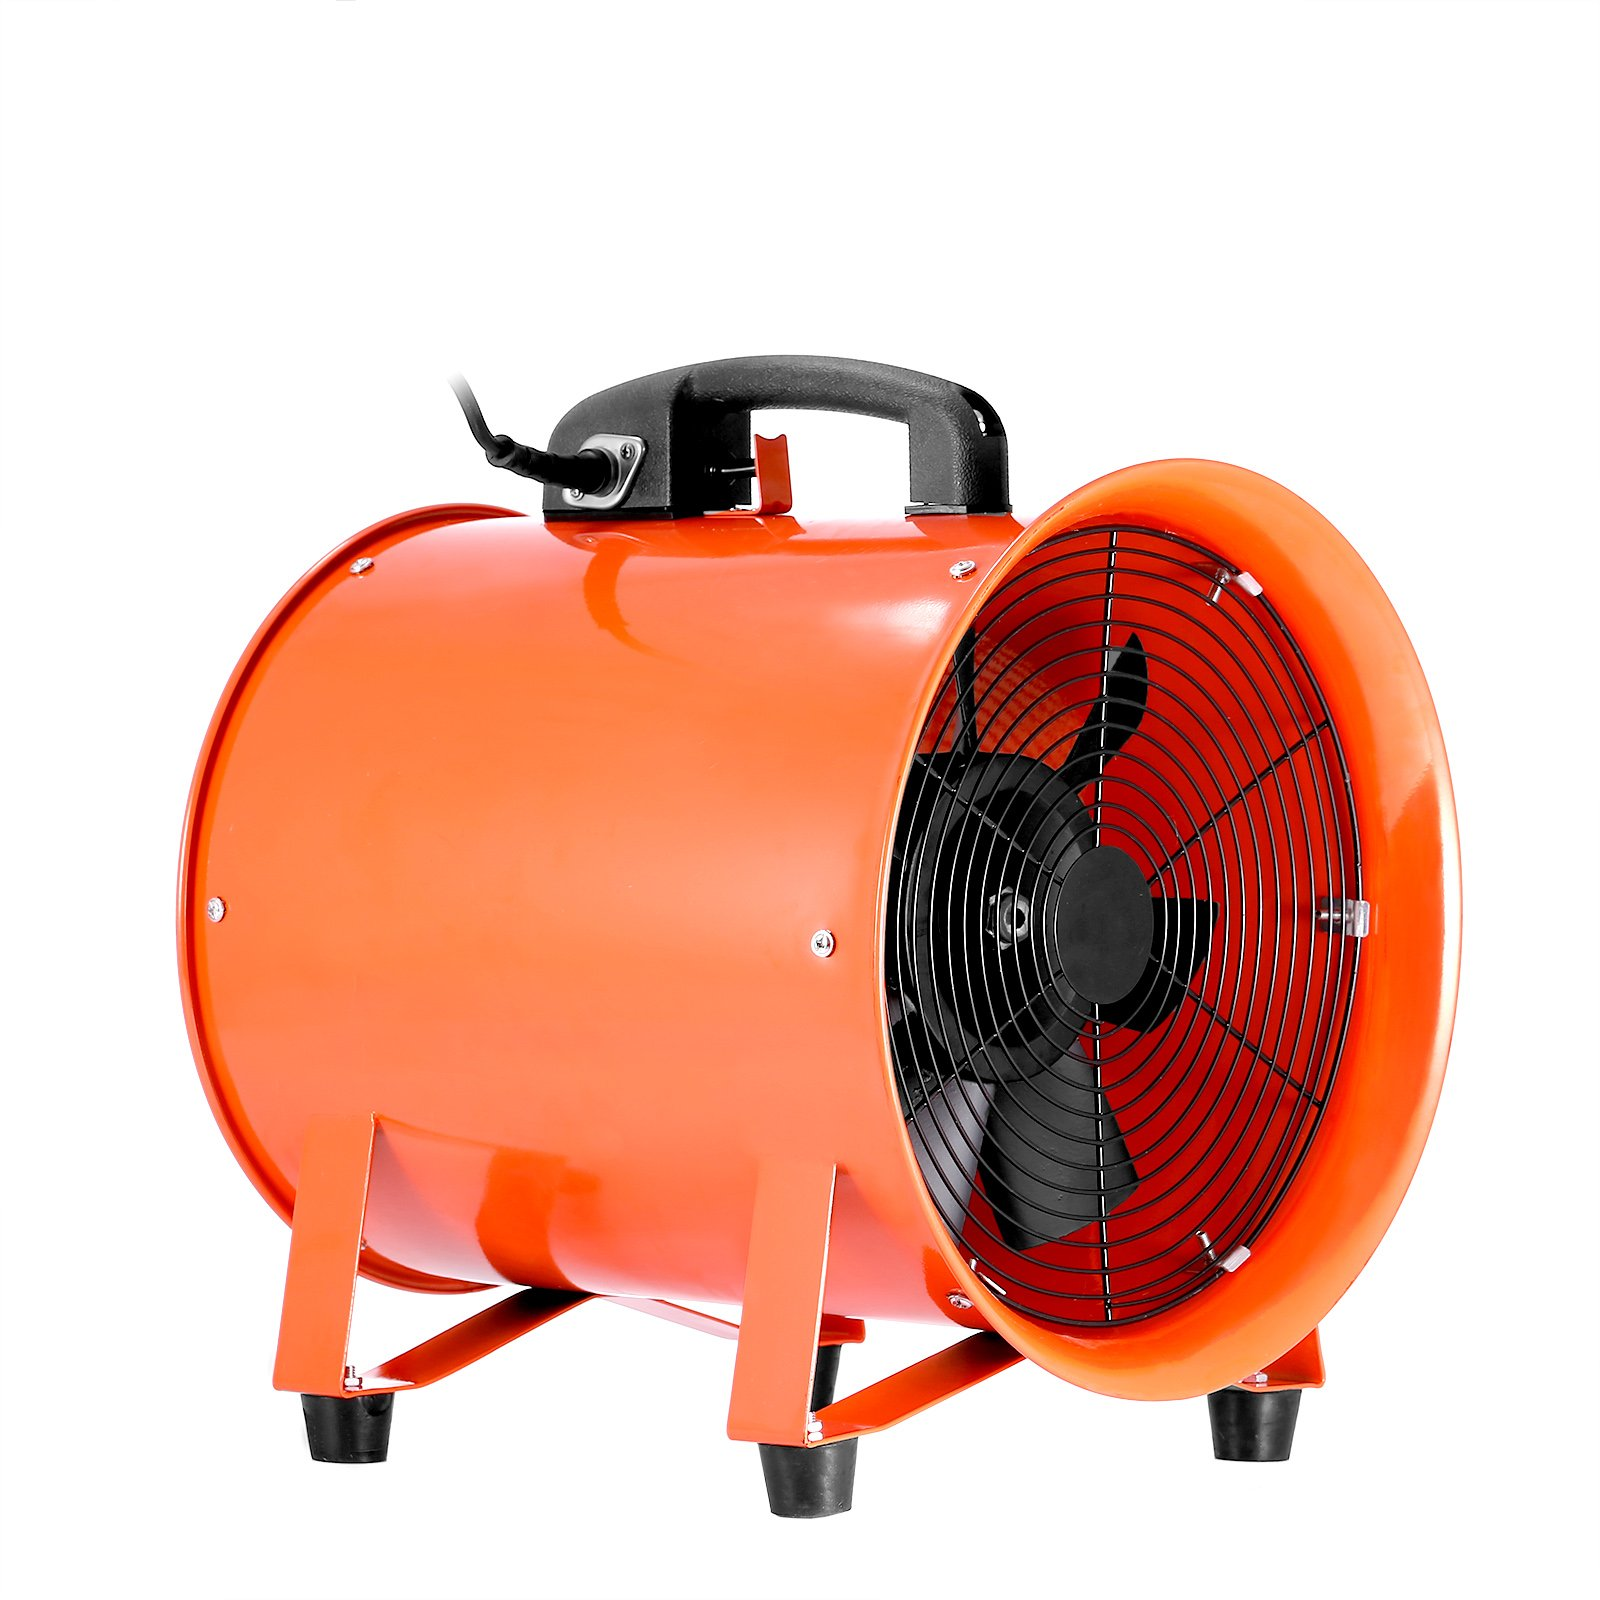 OrangeA Utility Blower 10 Inch 0.45HP 1520 CFM 3300 RPM Portable Ventilator High Velocity Utility Blower Fan Multifunctional Ventilator Fume Extractor ( 10 Inch)